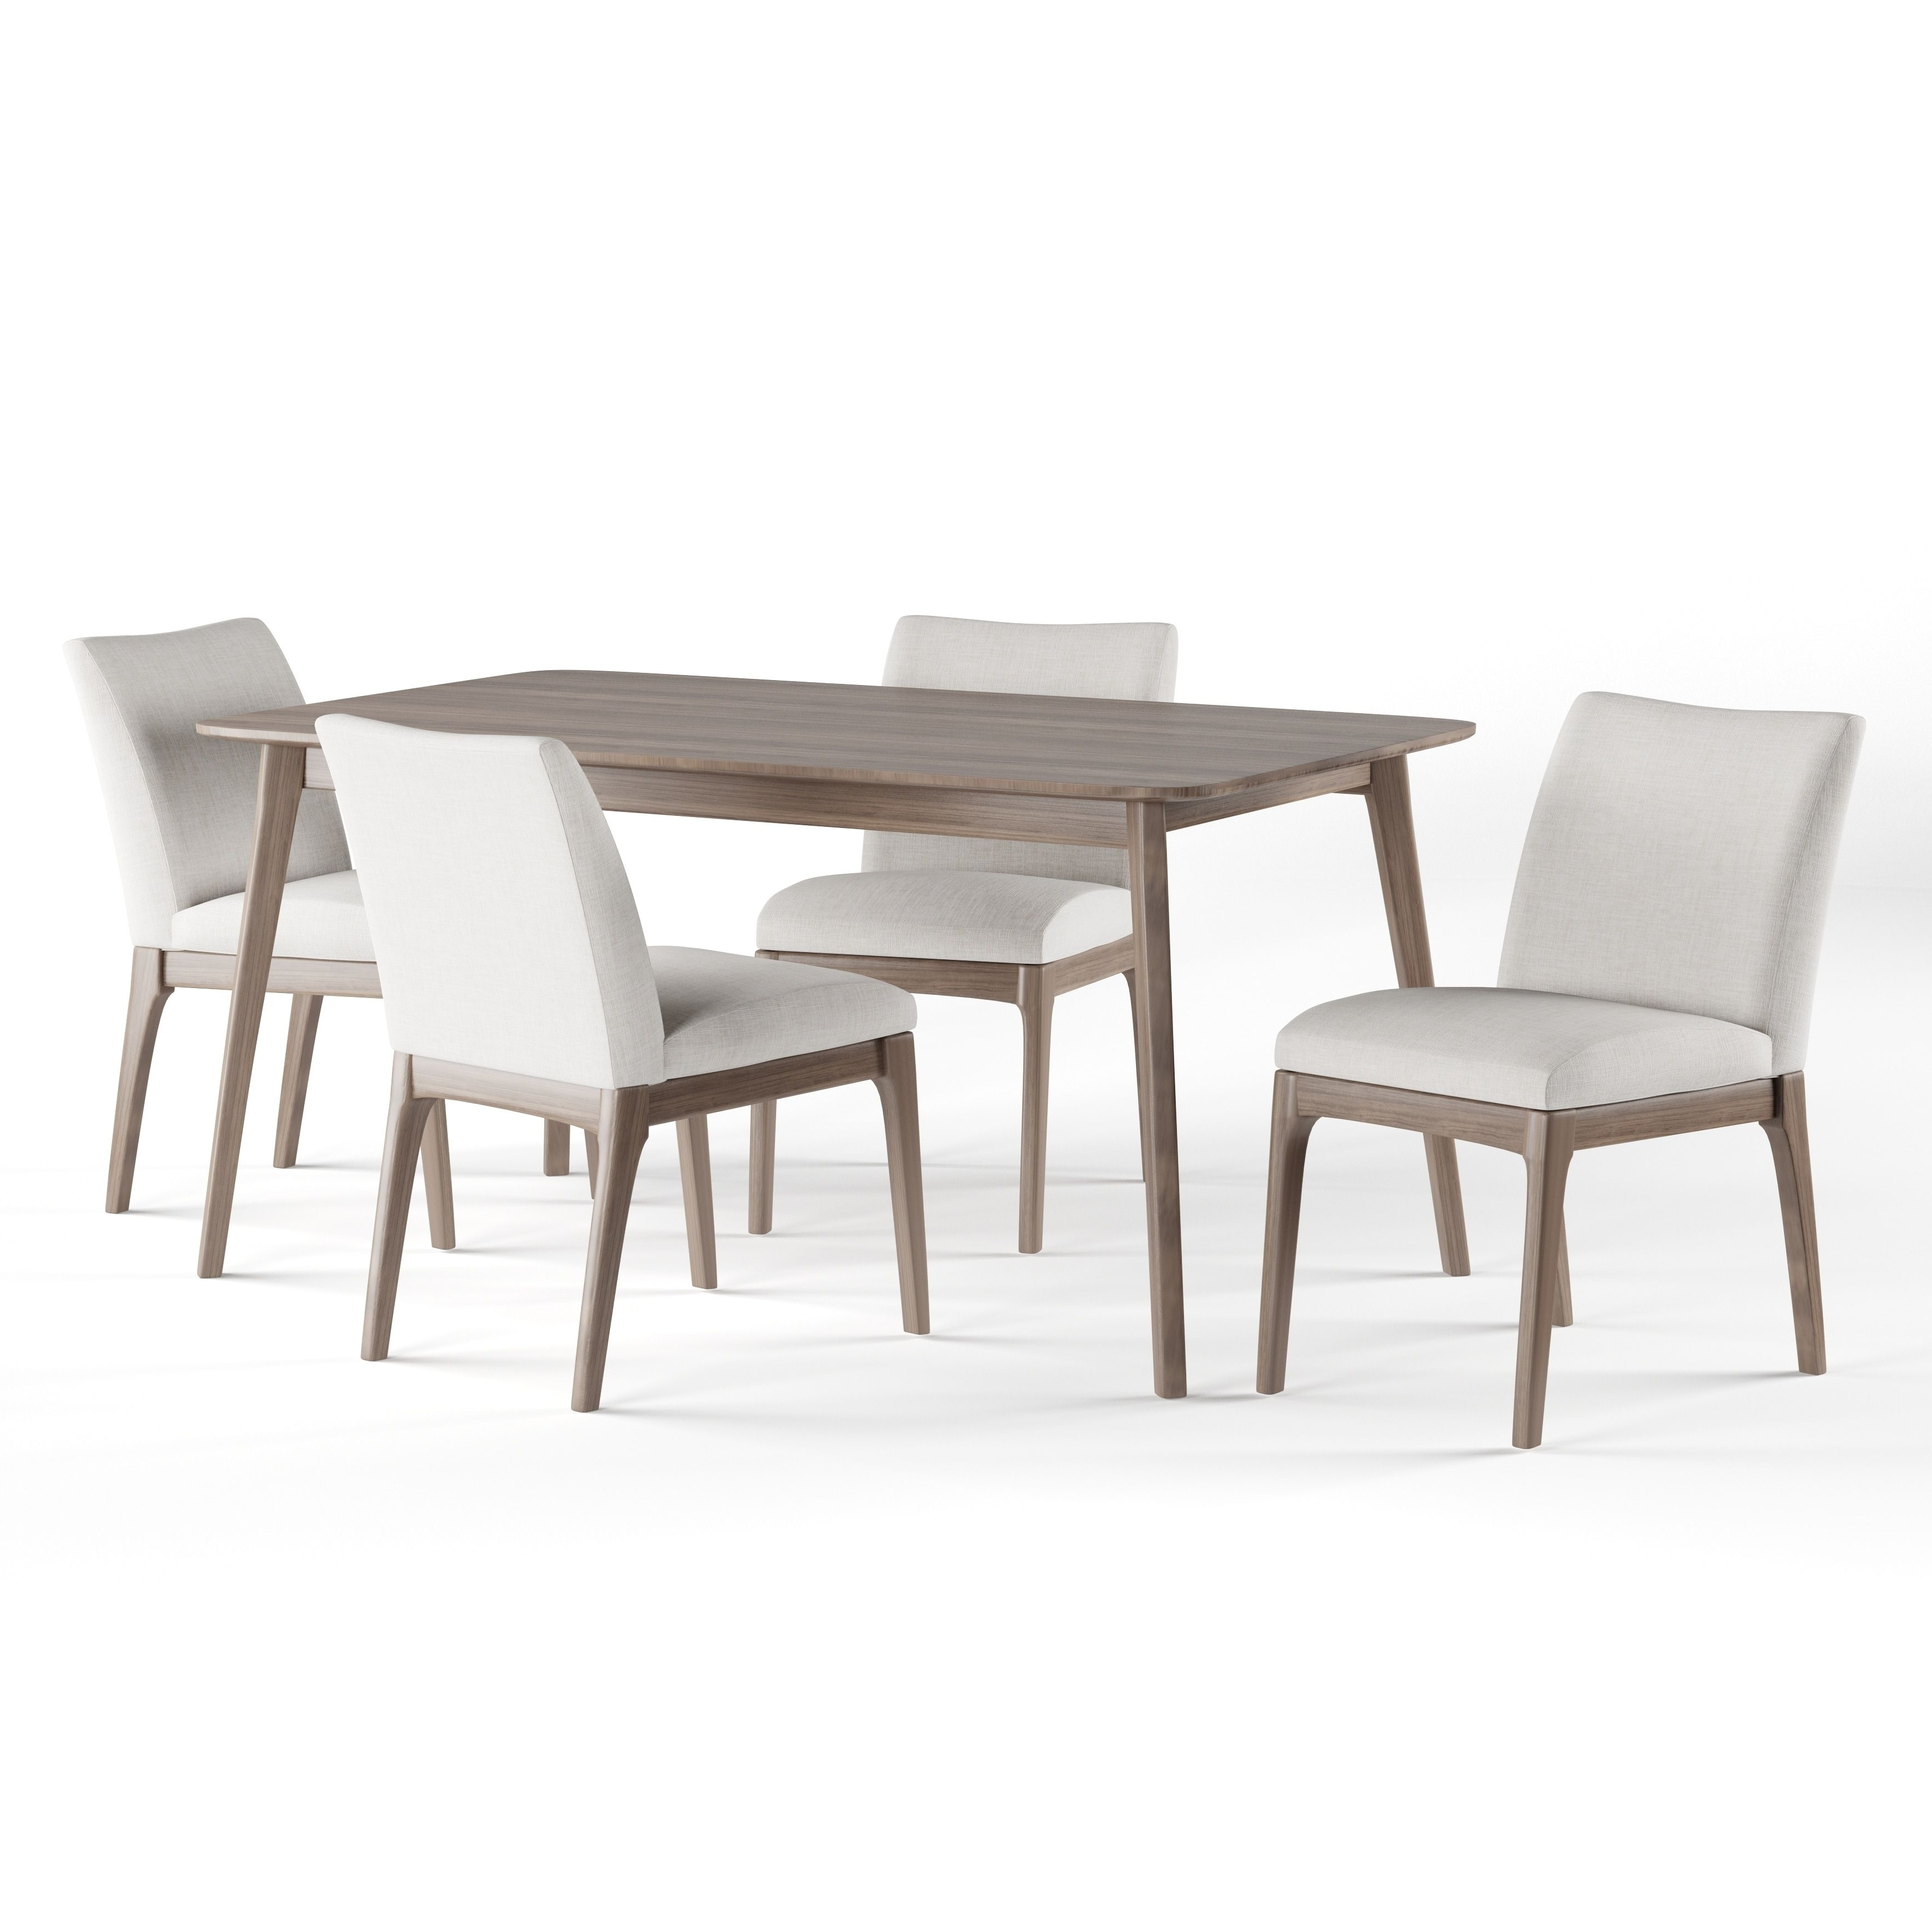 Toby 7 Piece Dining Setorren Ellis Reviews Intended For Most Popular Combs 5 Piece 48 Inch Extension Dining Sets With Mindy Side Chairs (View 20 of 25)